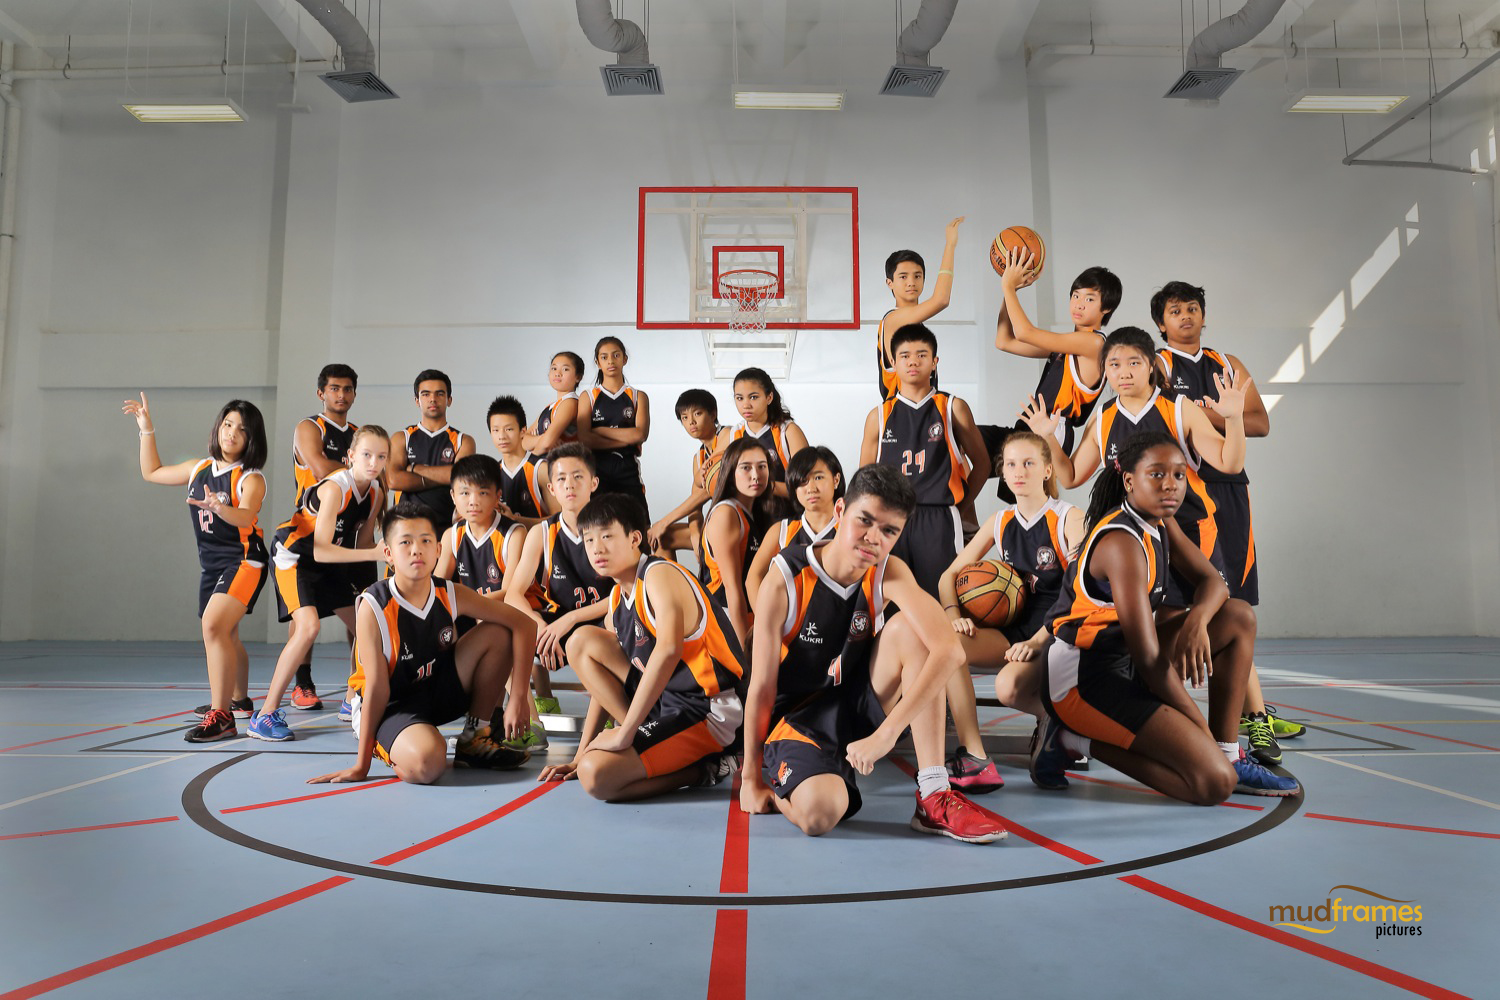 The British International School Under 15 Basketball Team